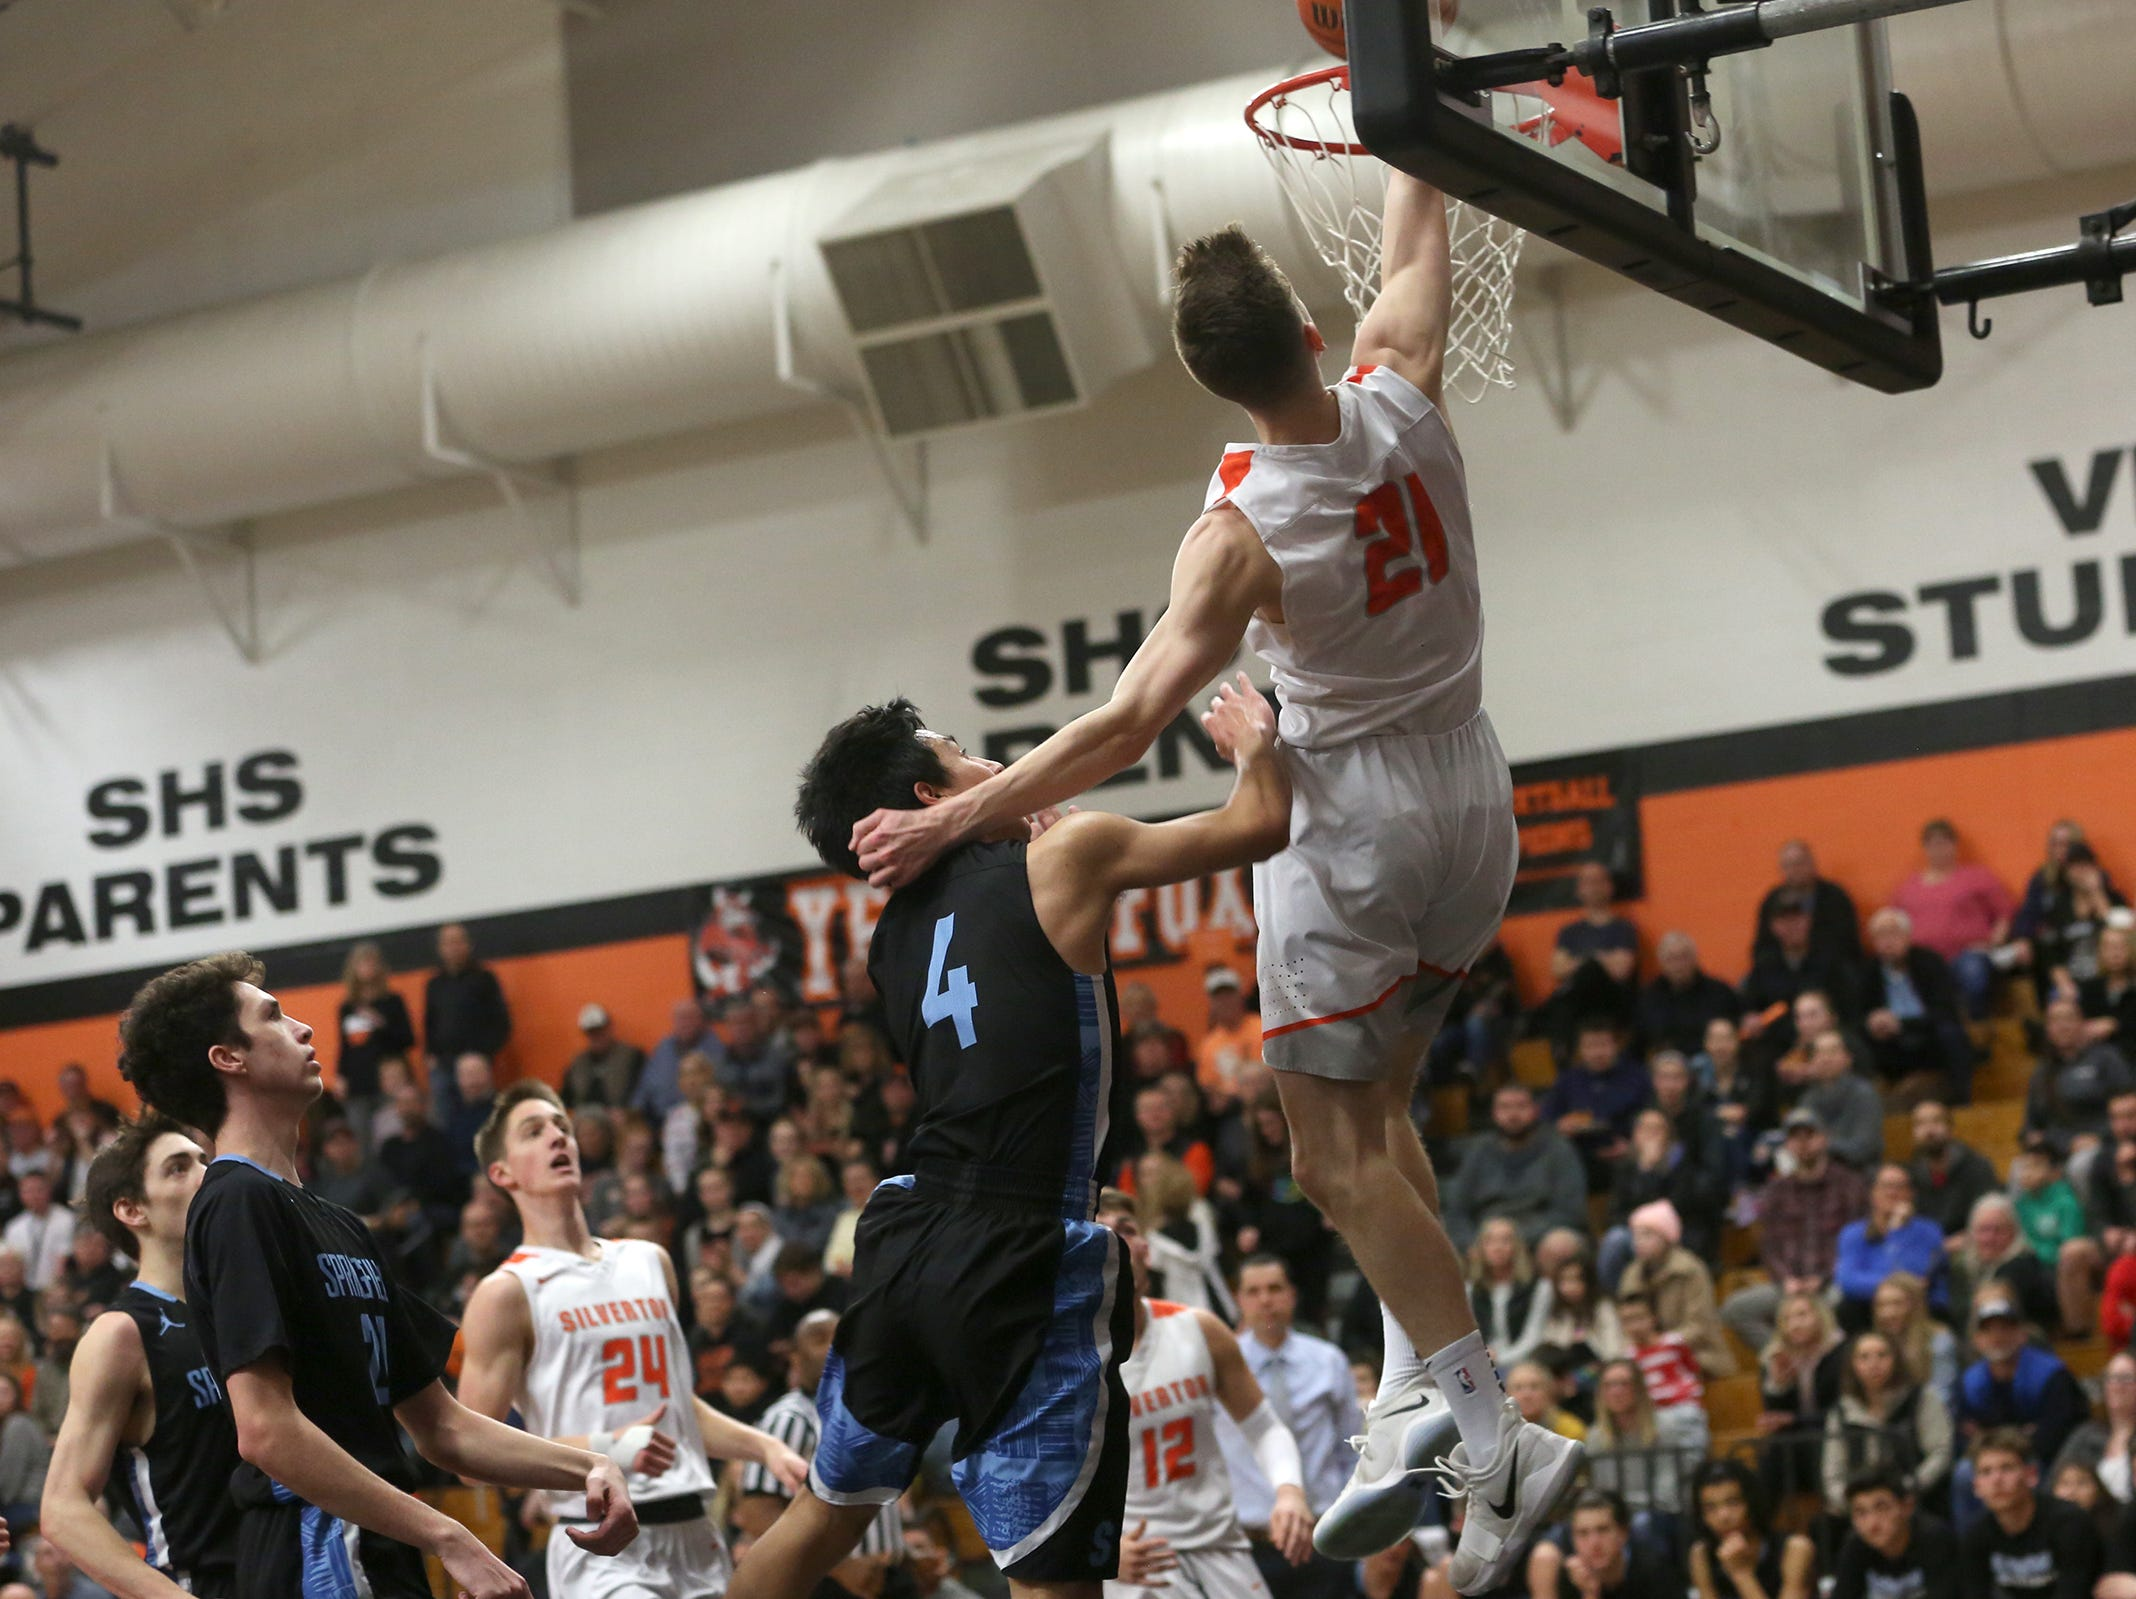 Silverton's Josiah Roth (21) dunks the ball during the Silverton vs. Springfield boys basketball OSAA state playoffs game at Silverton High School in Silverton on Saturday, March 2, 2019.